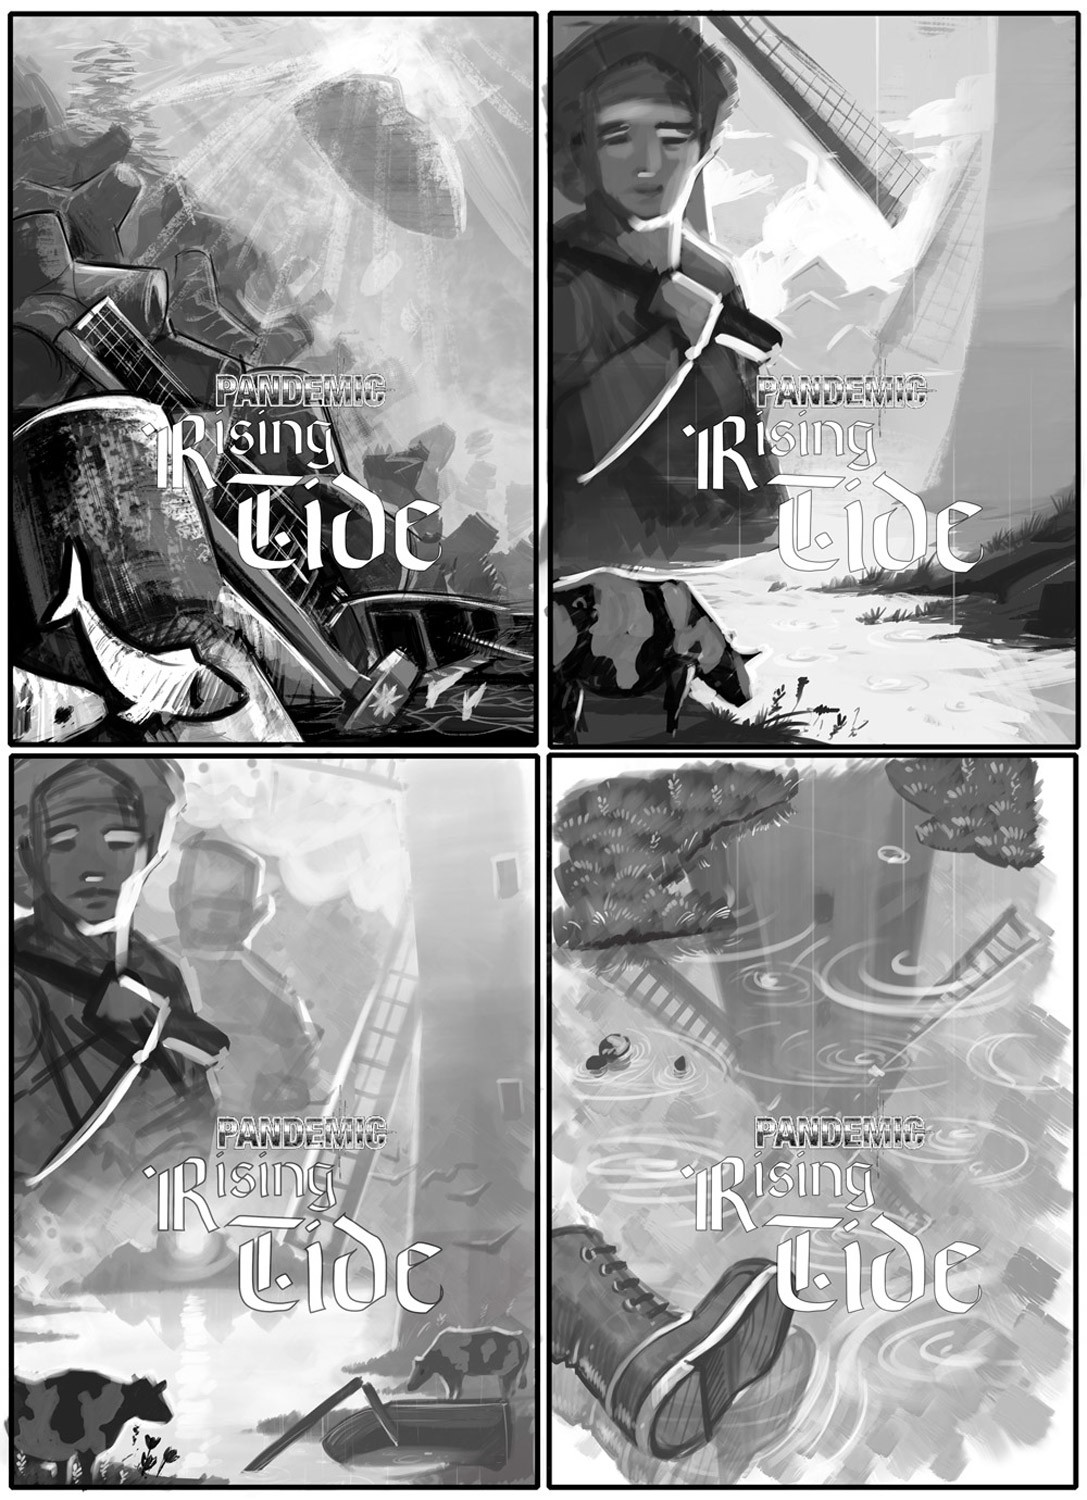 Pandemic Rising tide, composition sketches